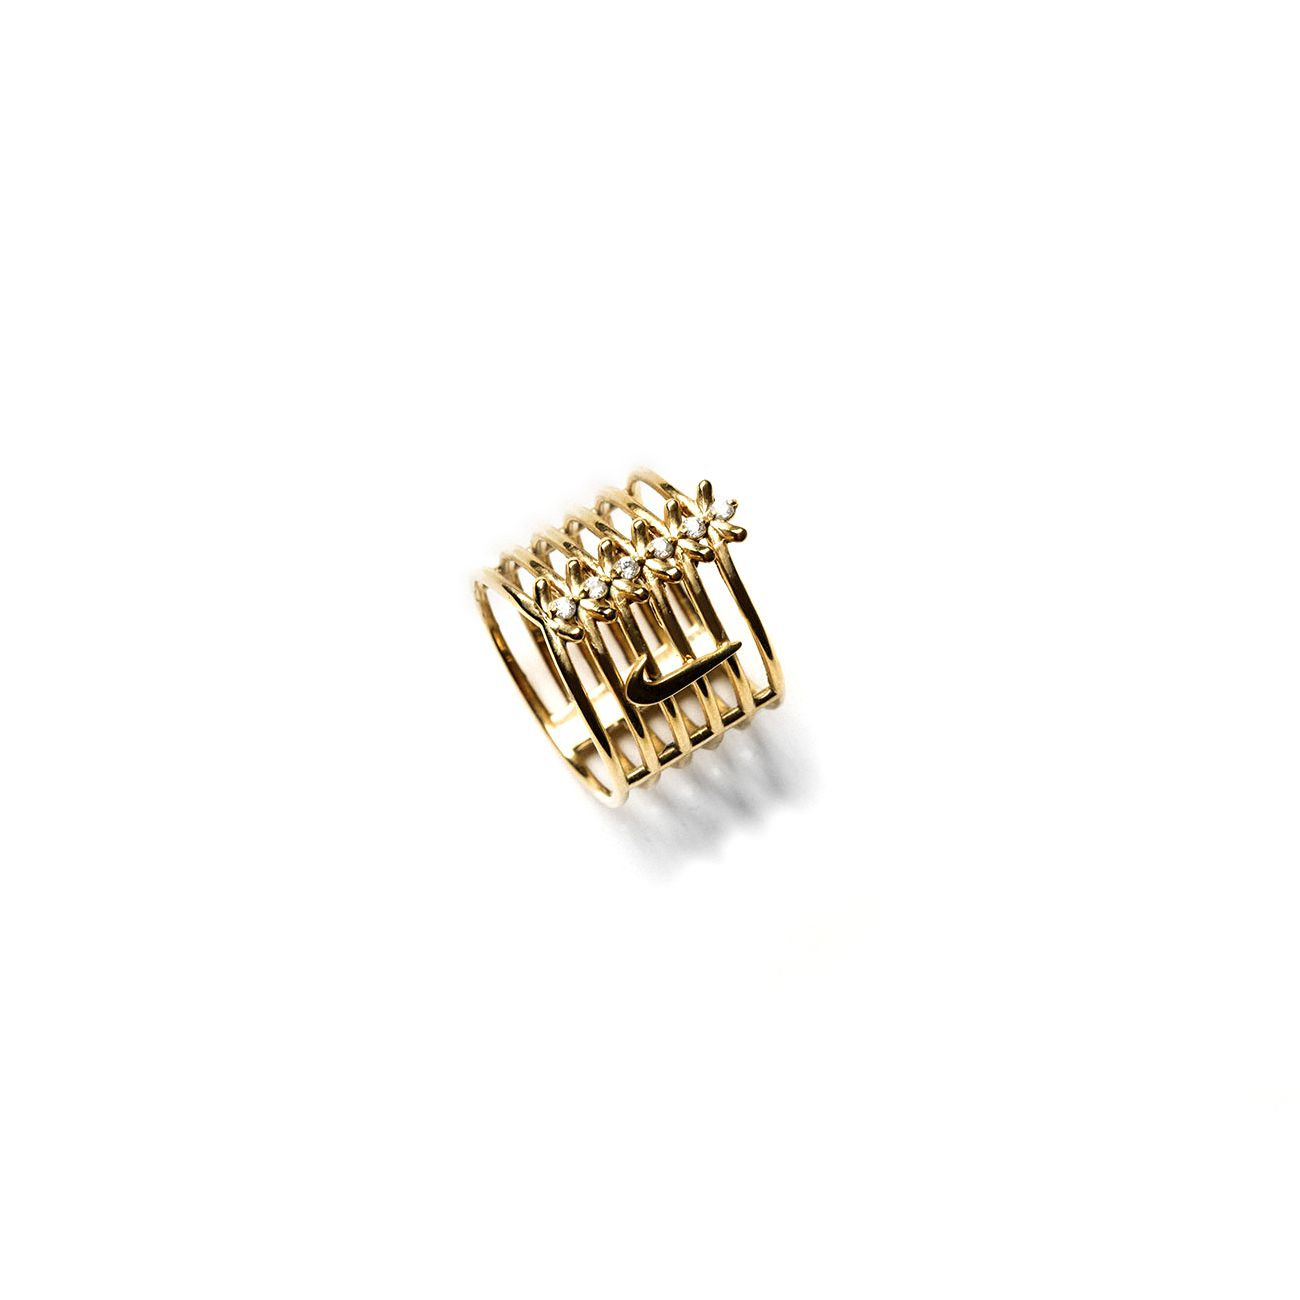 6 element 'Spinae' ring for Nike Limited edition in bronze